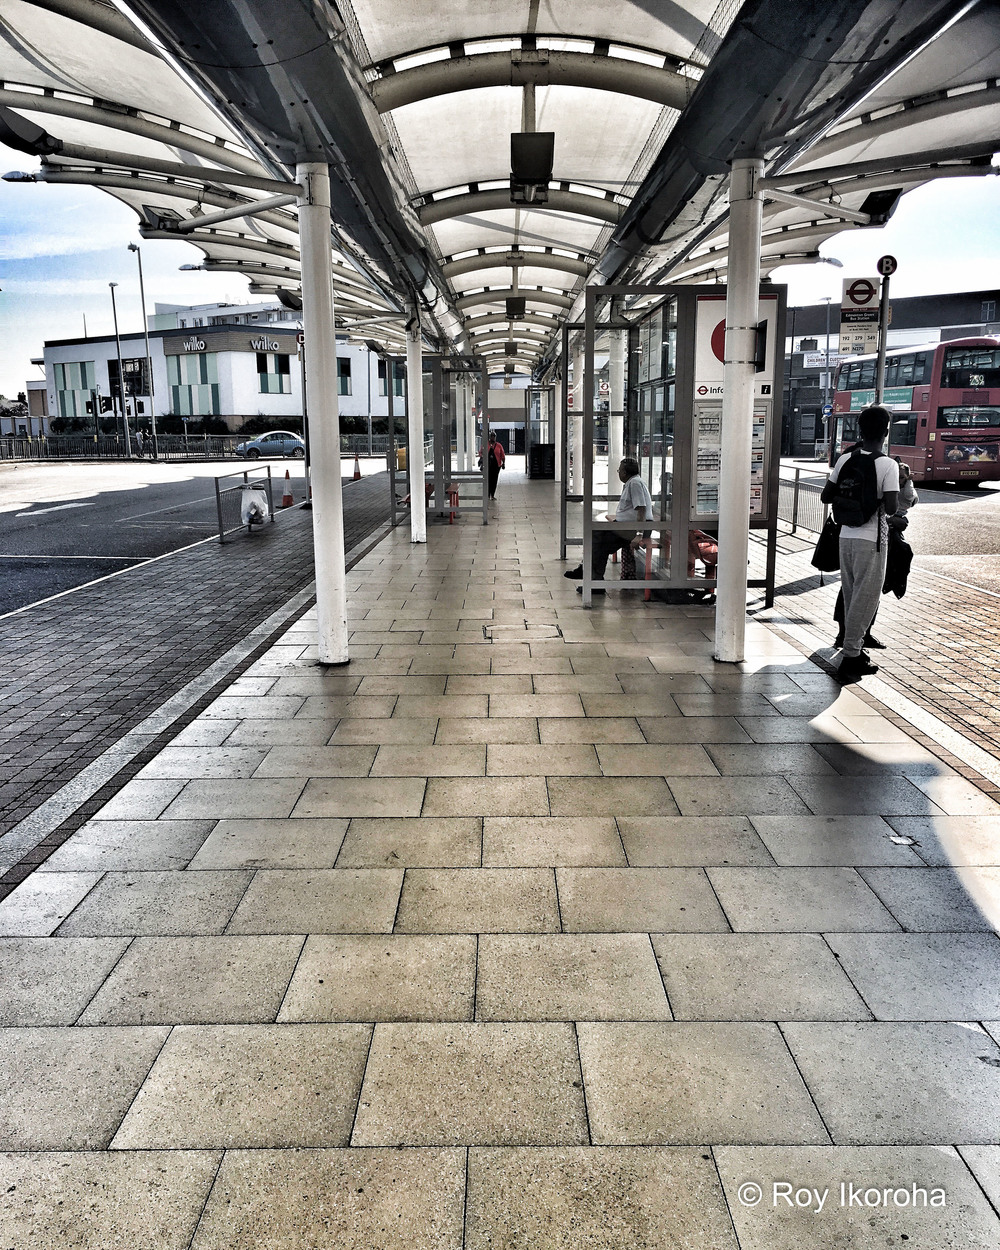 Edmonton Green bus station, London